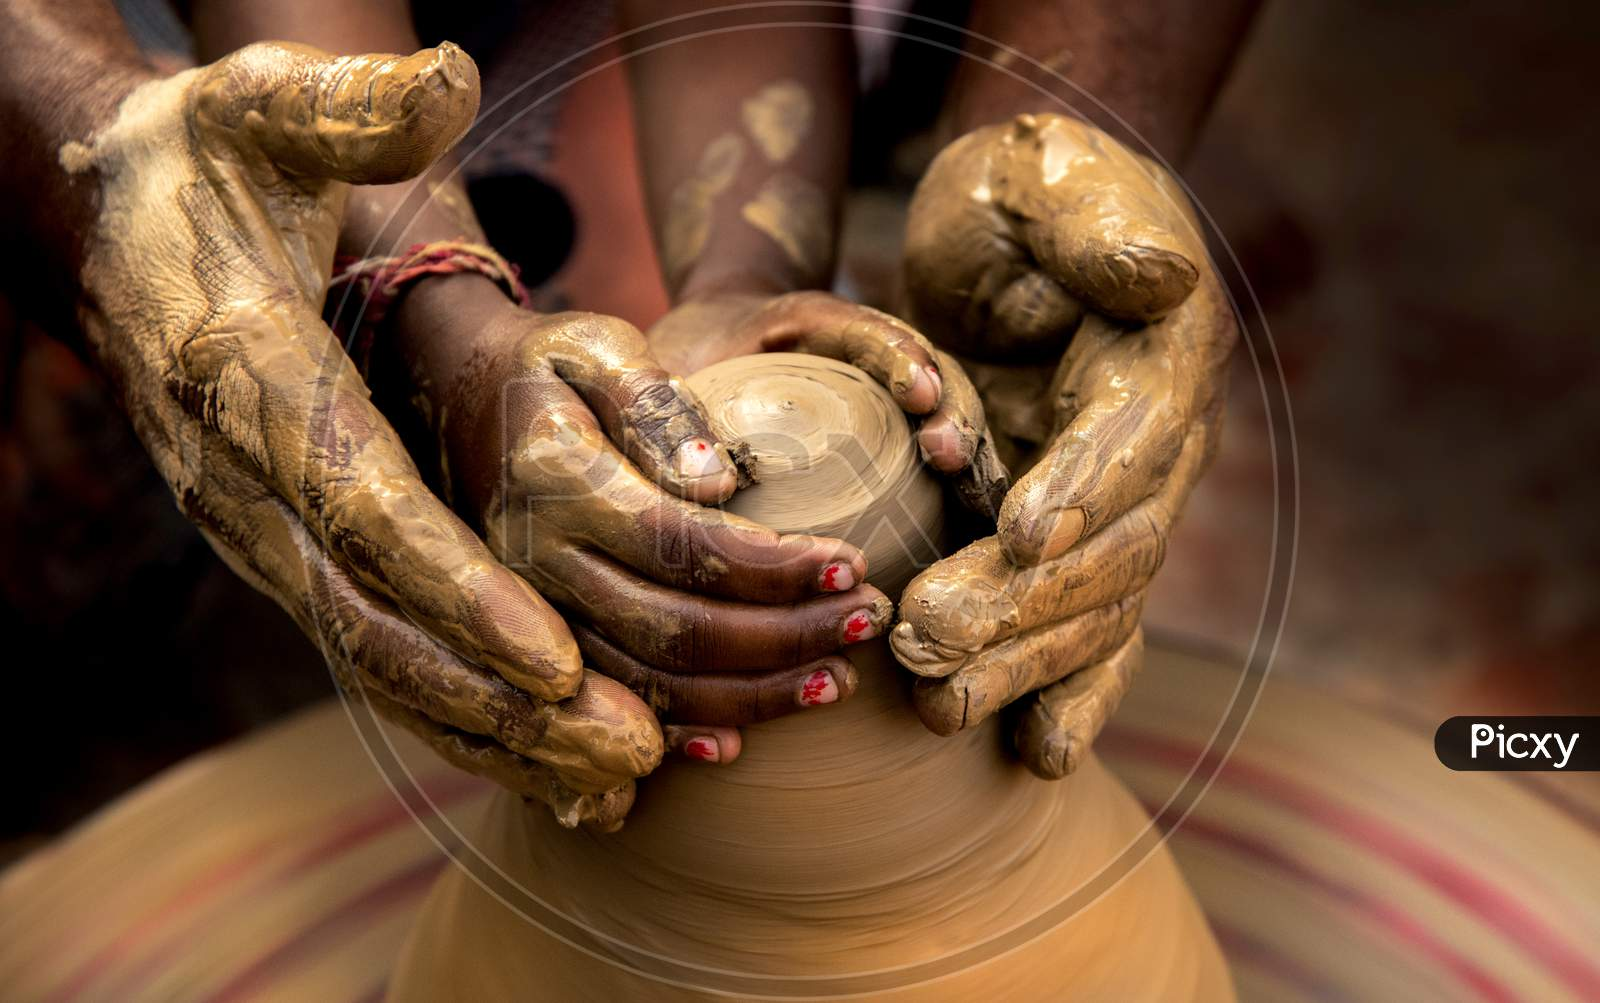 Unglazed Pottery, The Oldest Form Of Pottery Practiced In India, Terracotta Clay-Pot Making